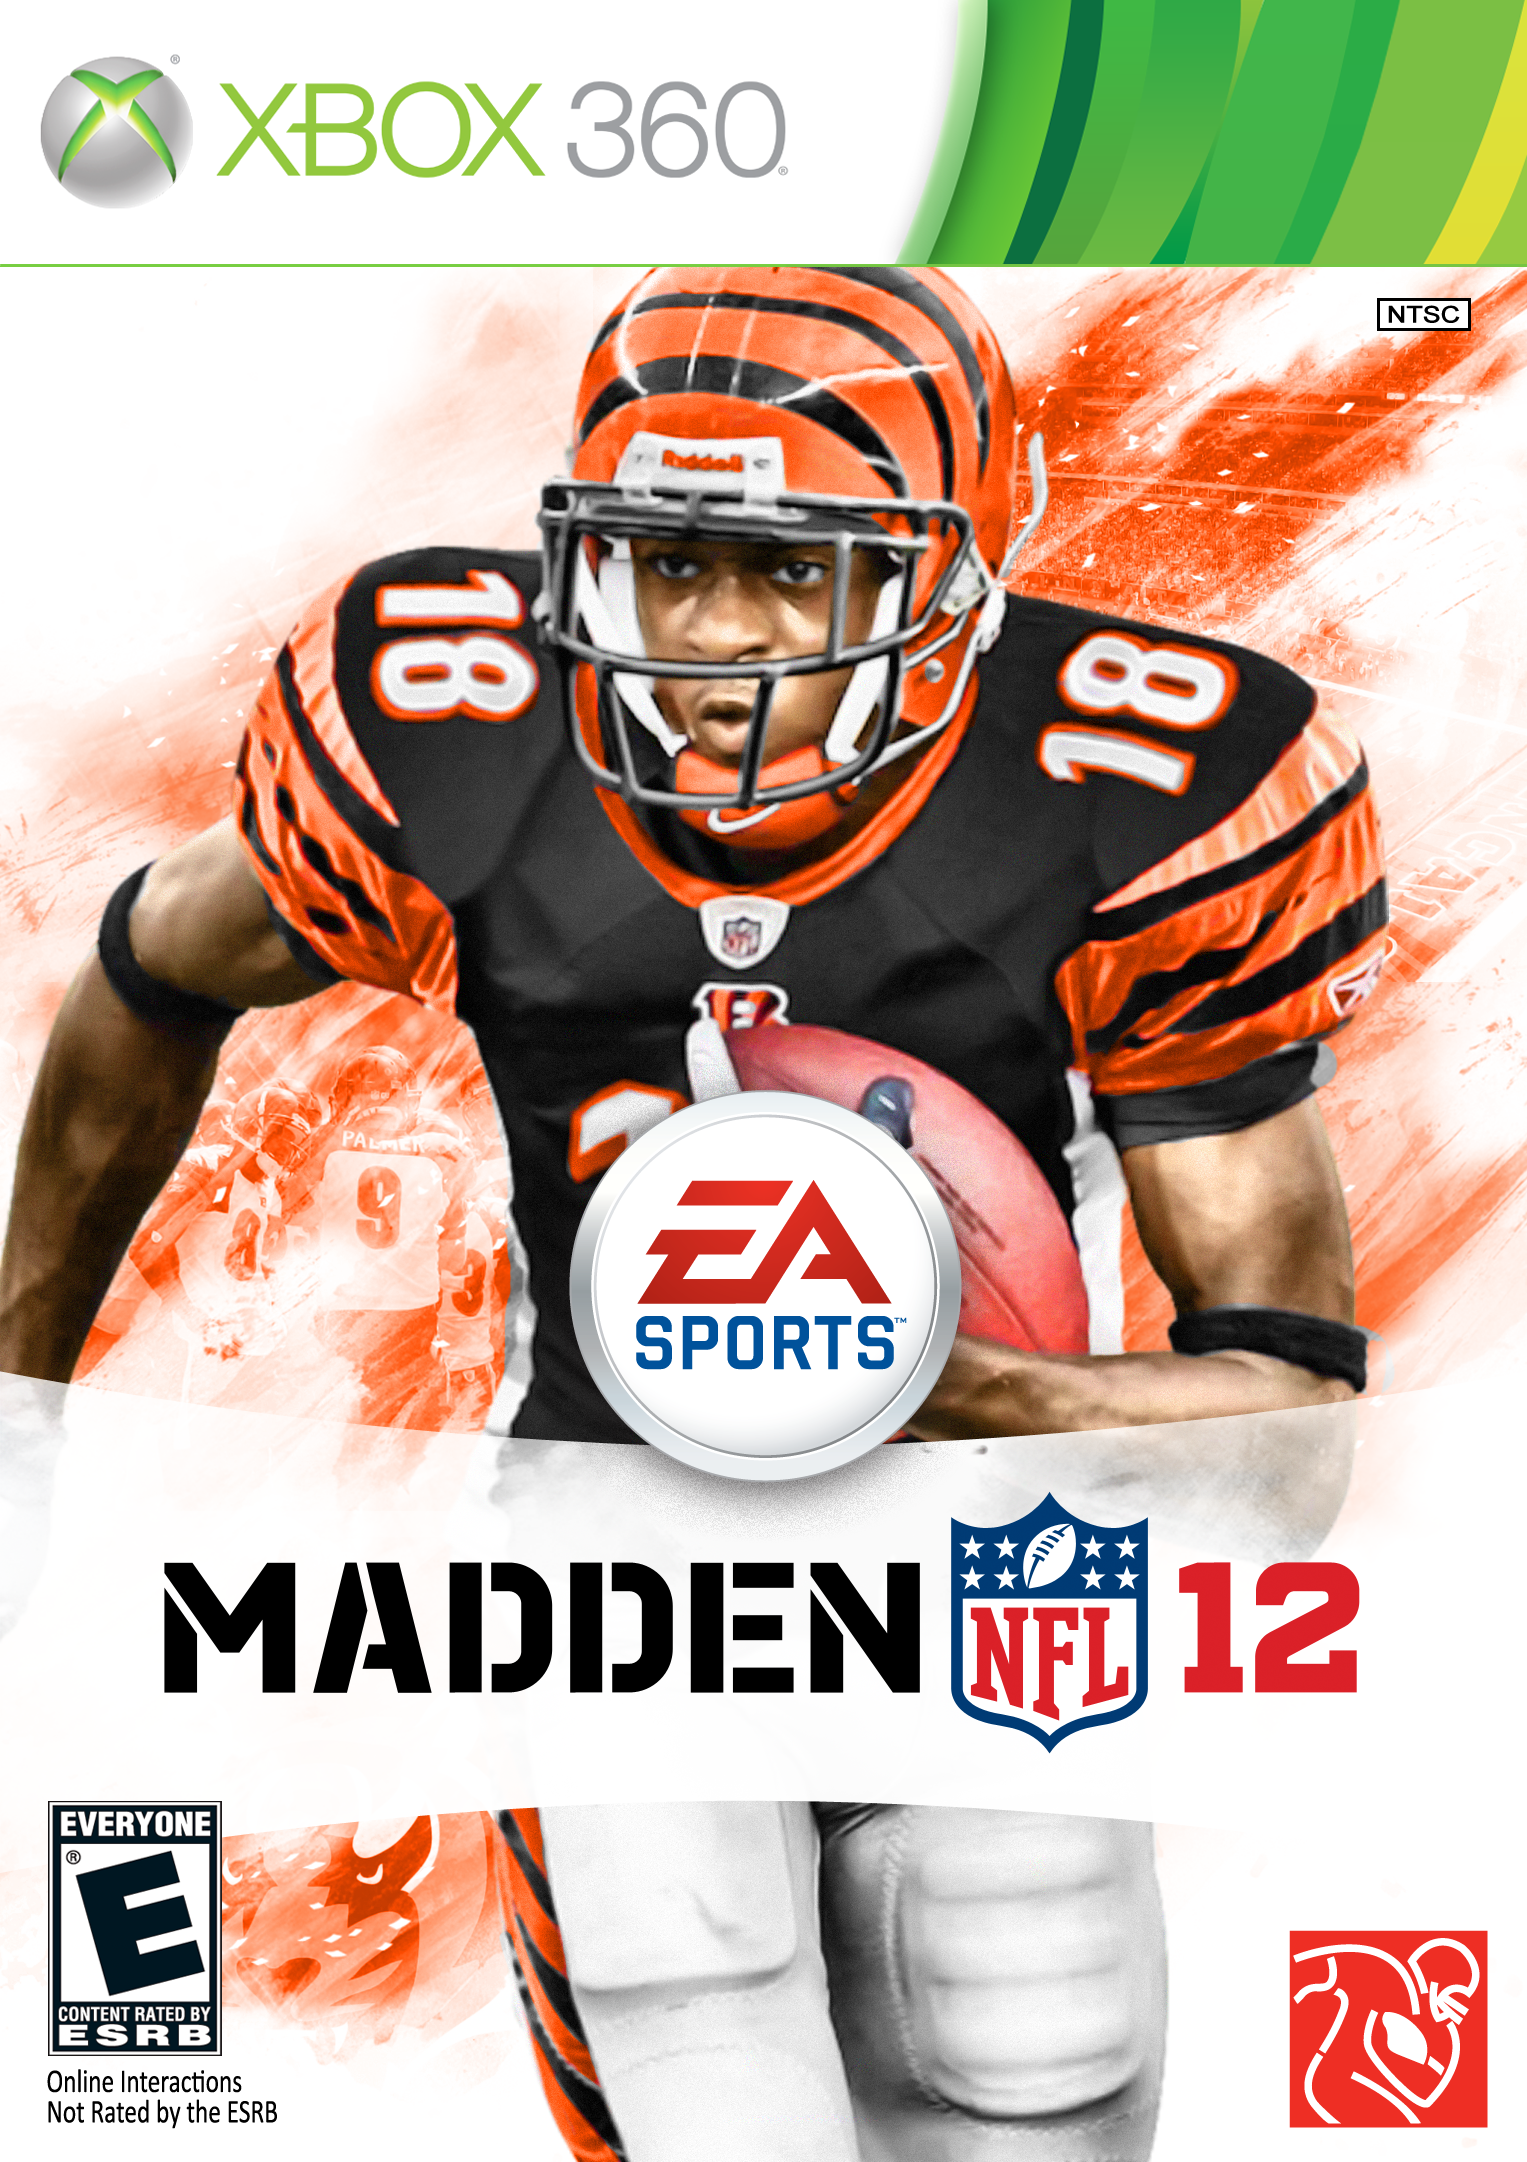 5220a72d69b Aj Green on Madden Cover | Madden Cover | Football video games, Nfl ...